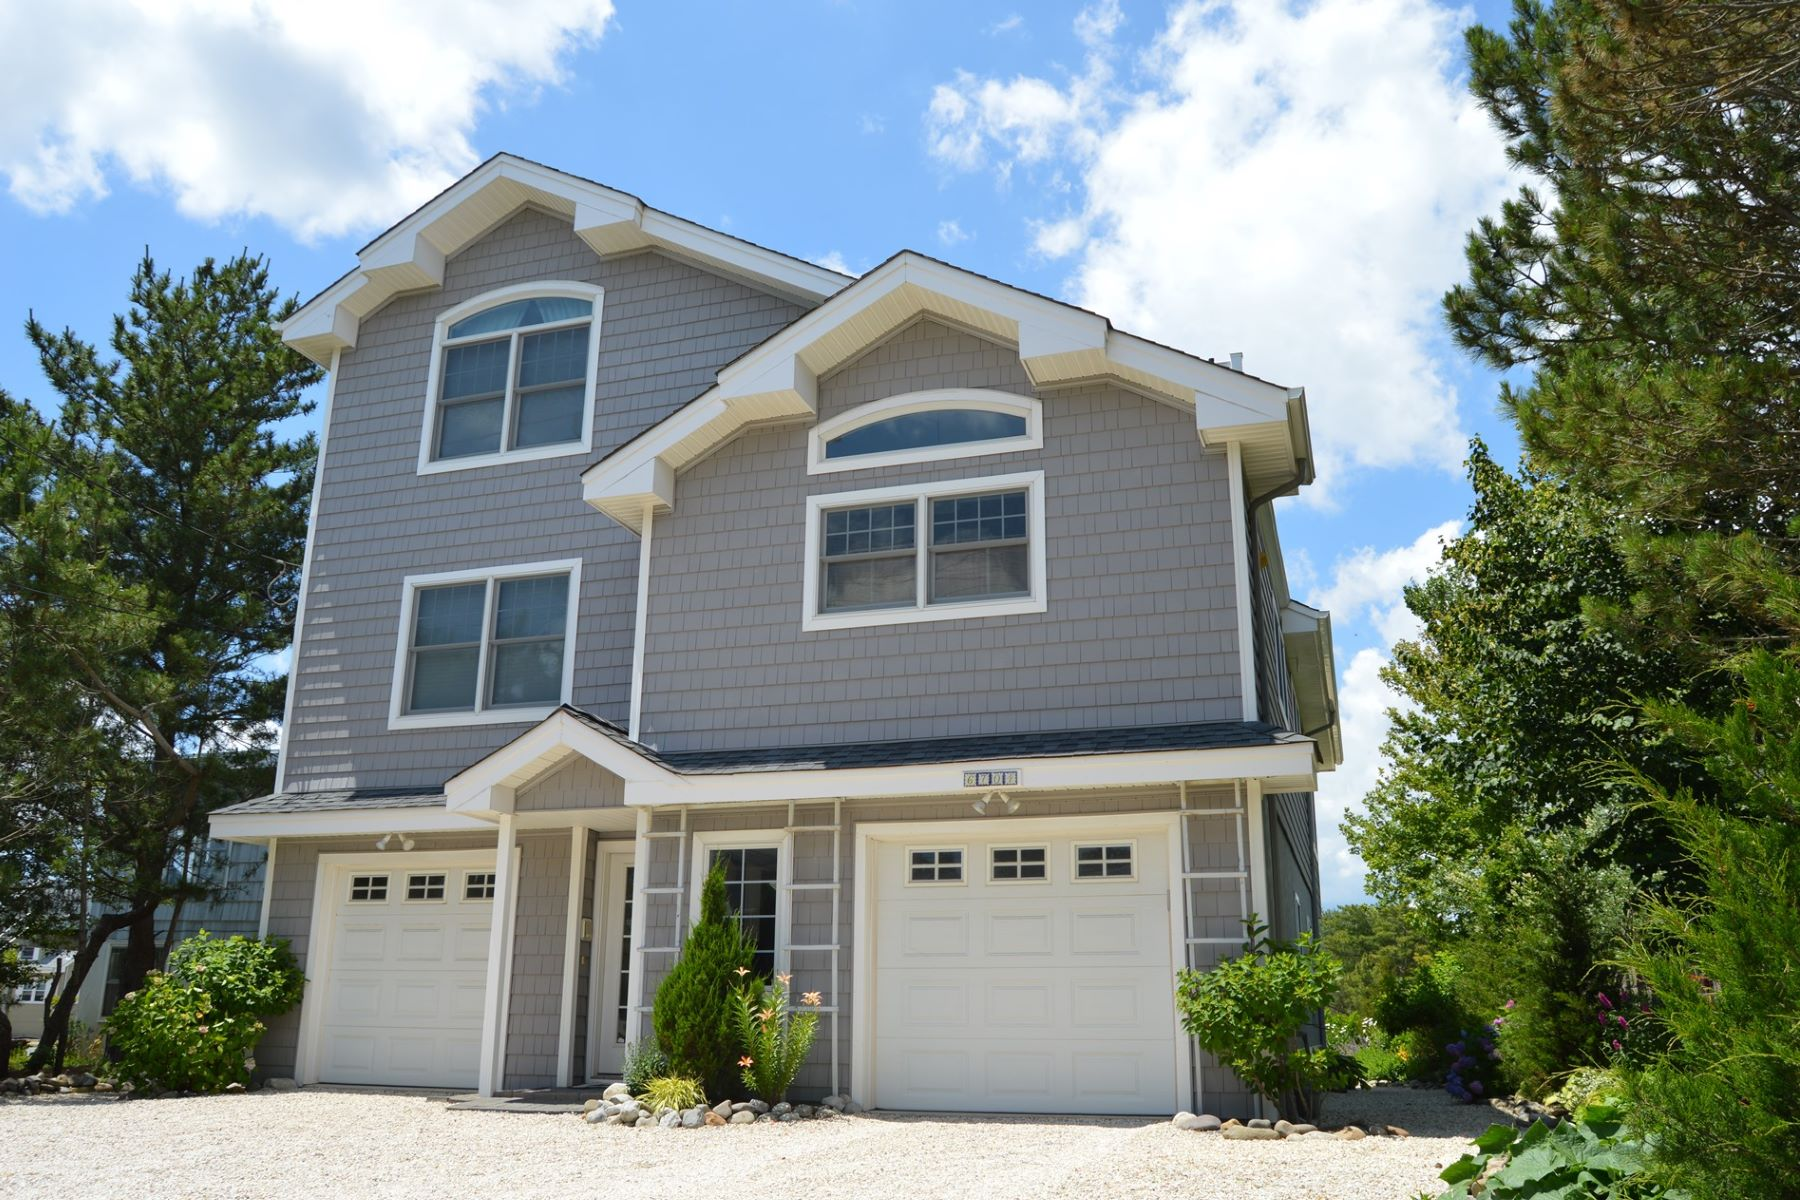 Single Family Home for Sale at HIGH RISER 6704 Long Beach Blvd. Harvey Cedars, New Jersey 08008 United States